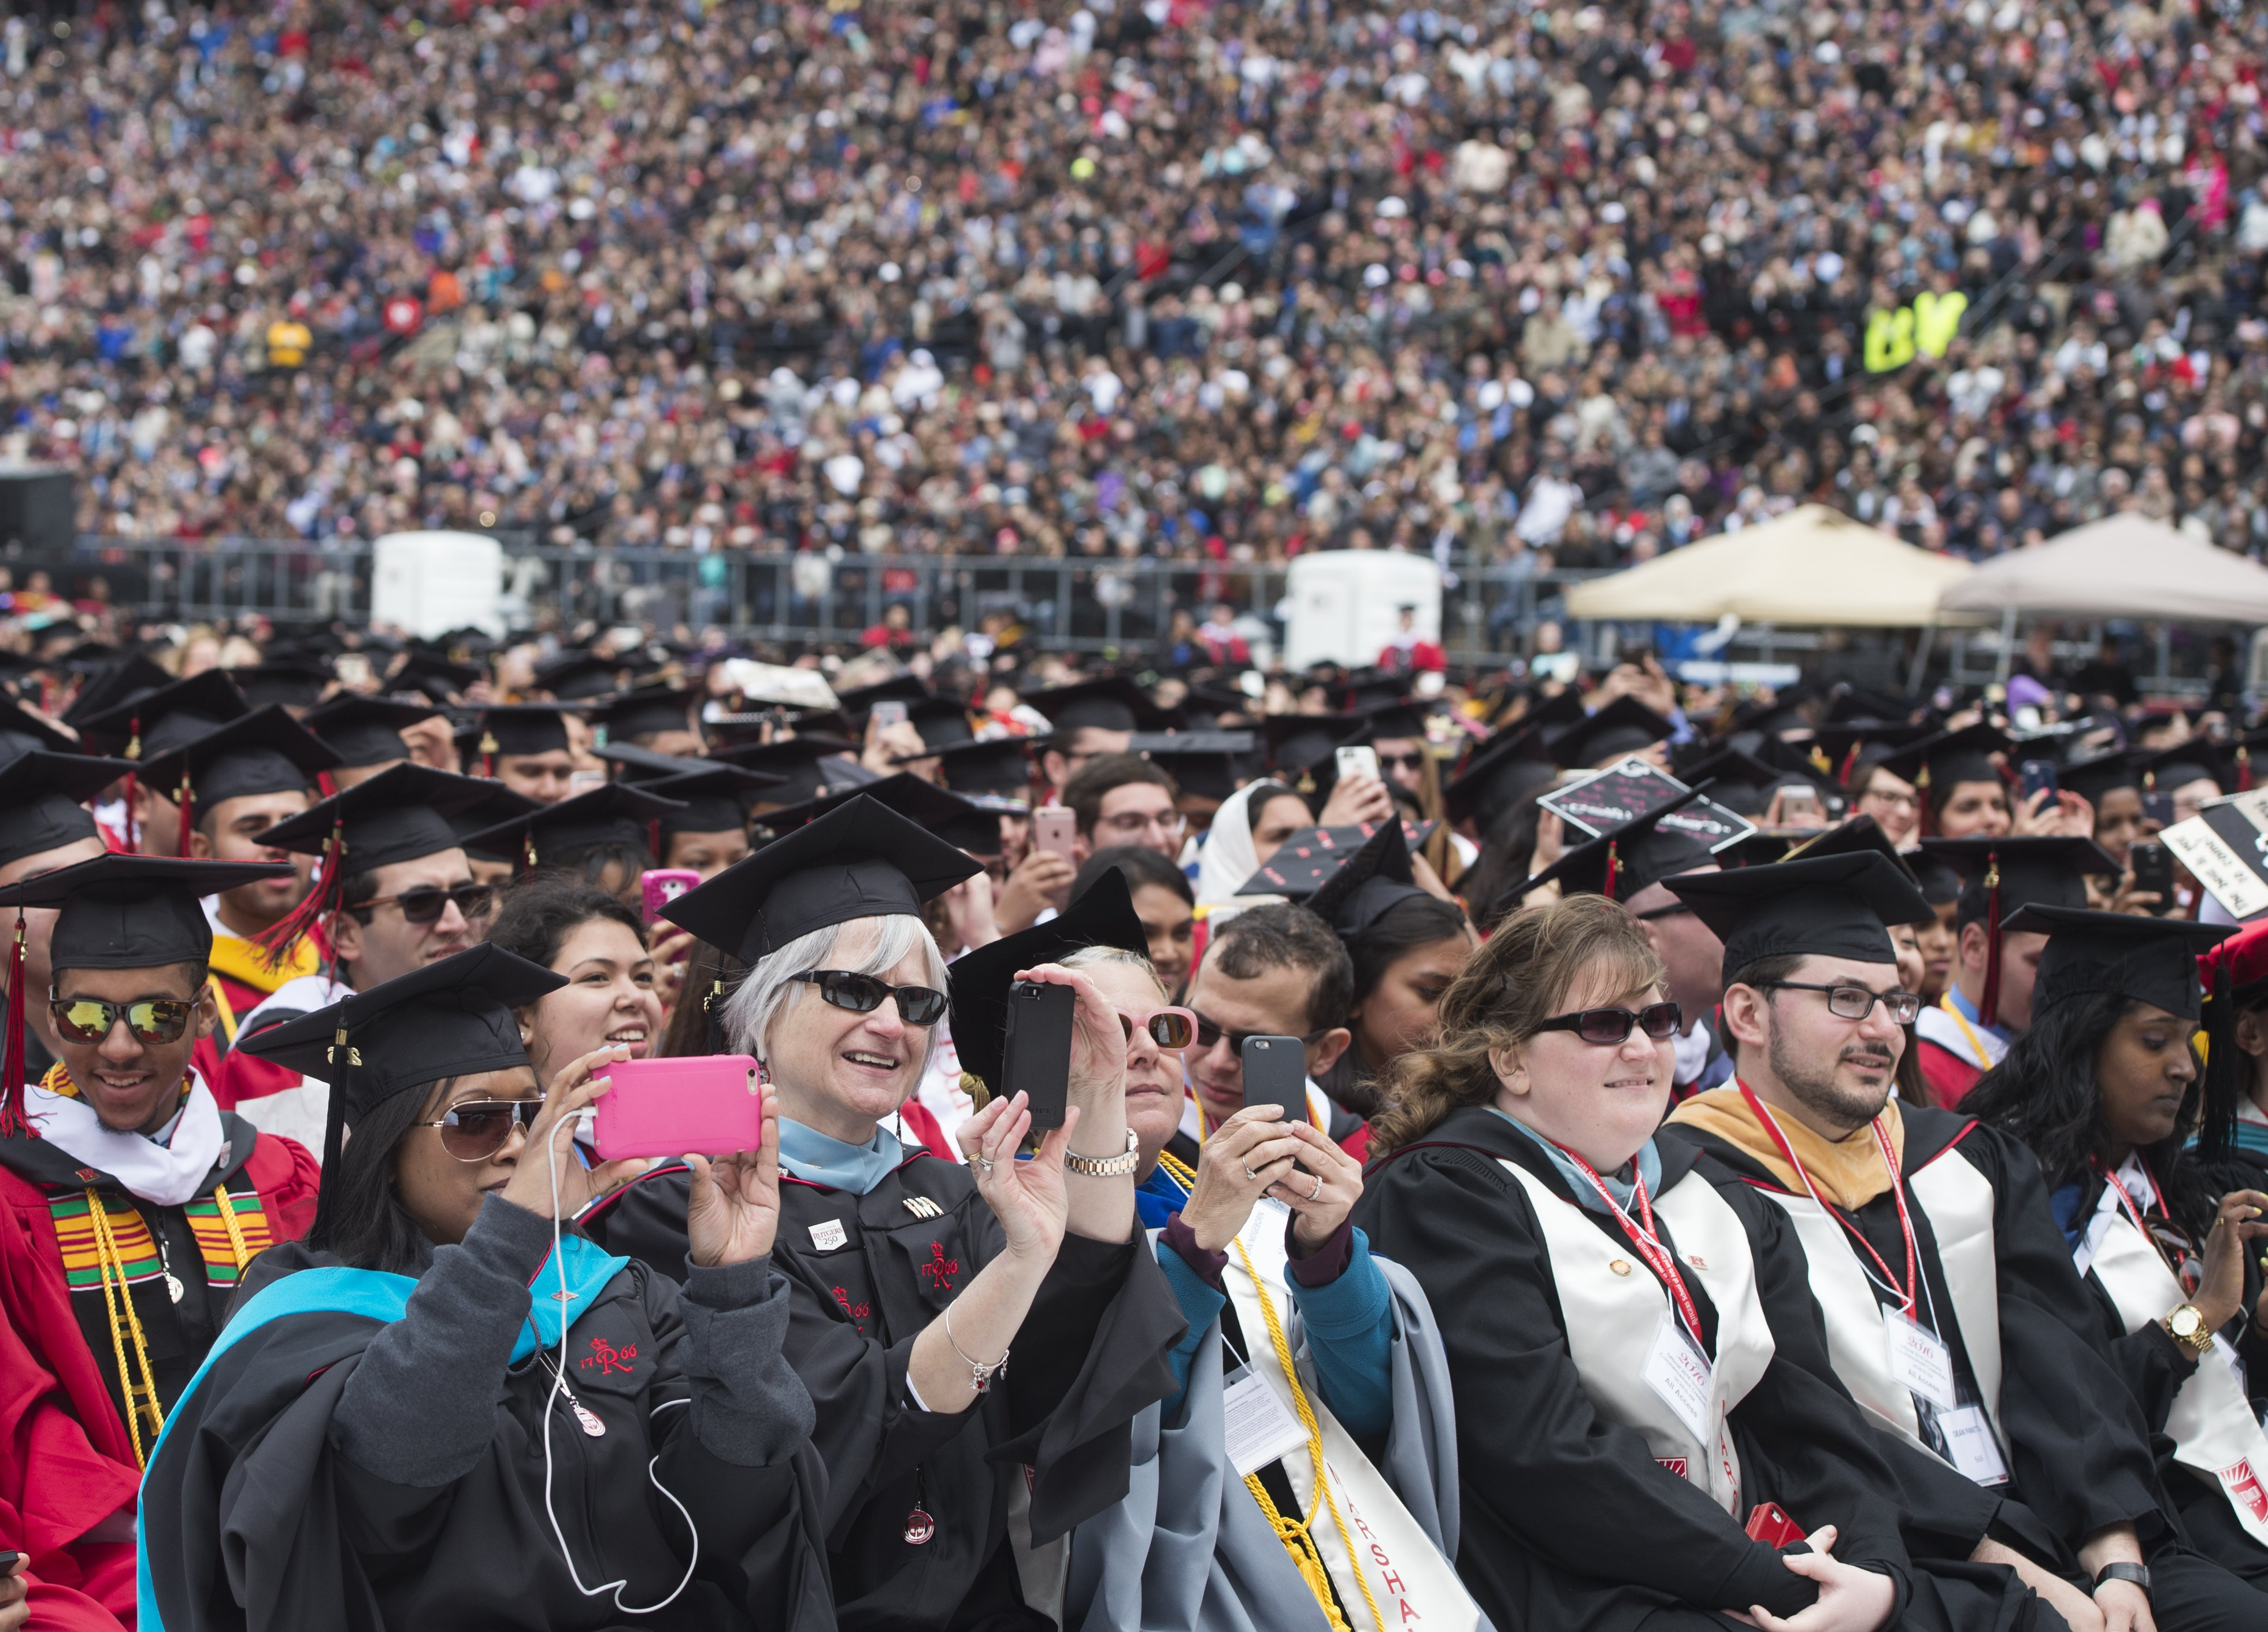 Graduates and attendees listen as US President Barack Obama delivers the commencement address for Rutgers University at High Point Solutions Stadium in Piscataway, New Jersey.  (Saul Loeb/AFP/Getty)